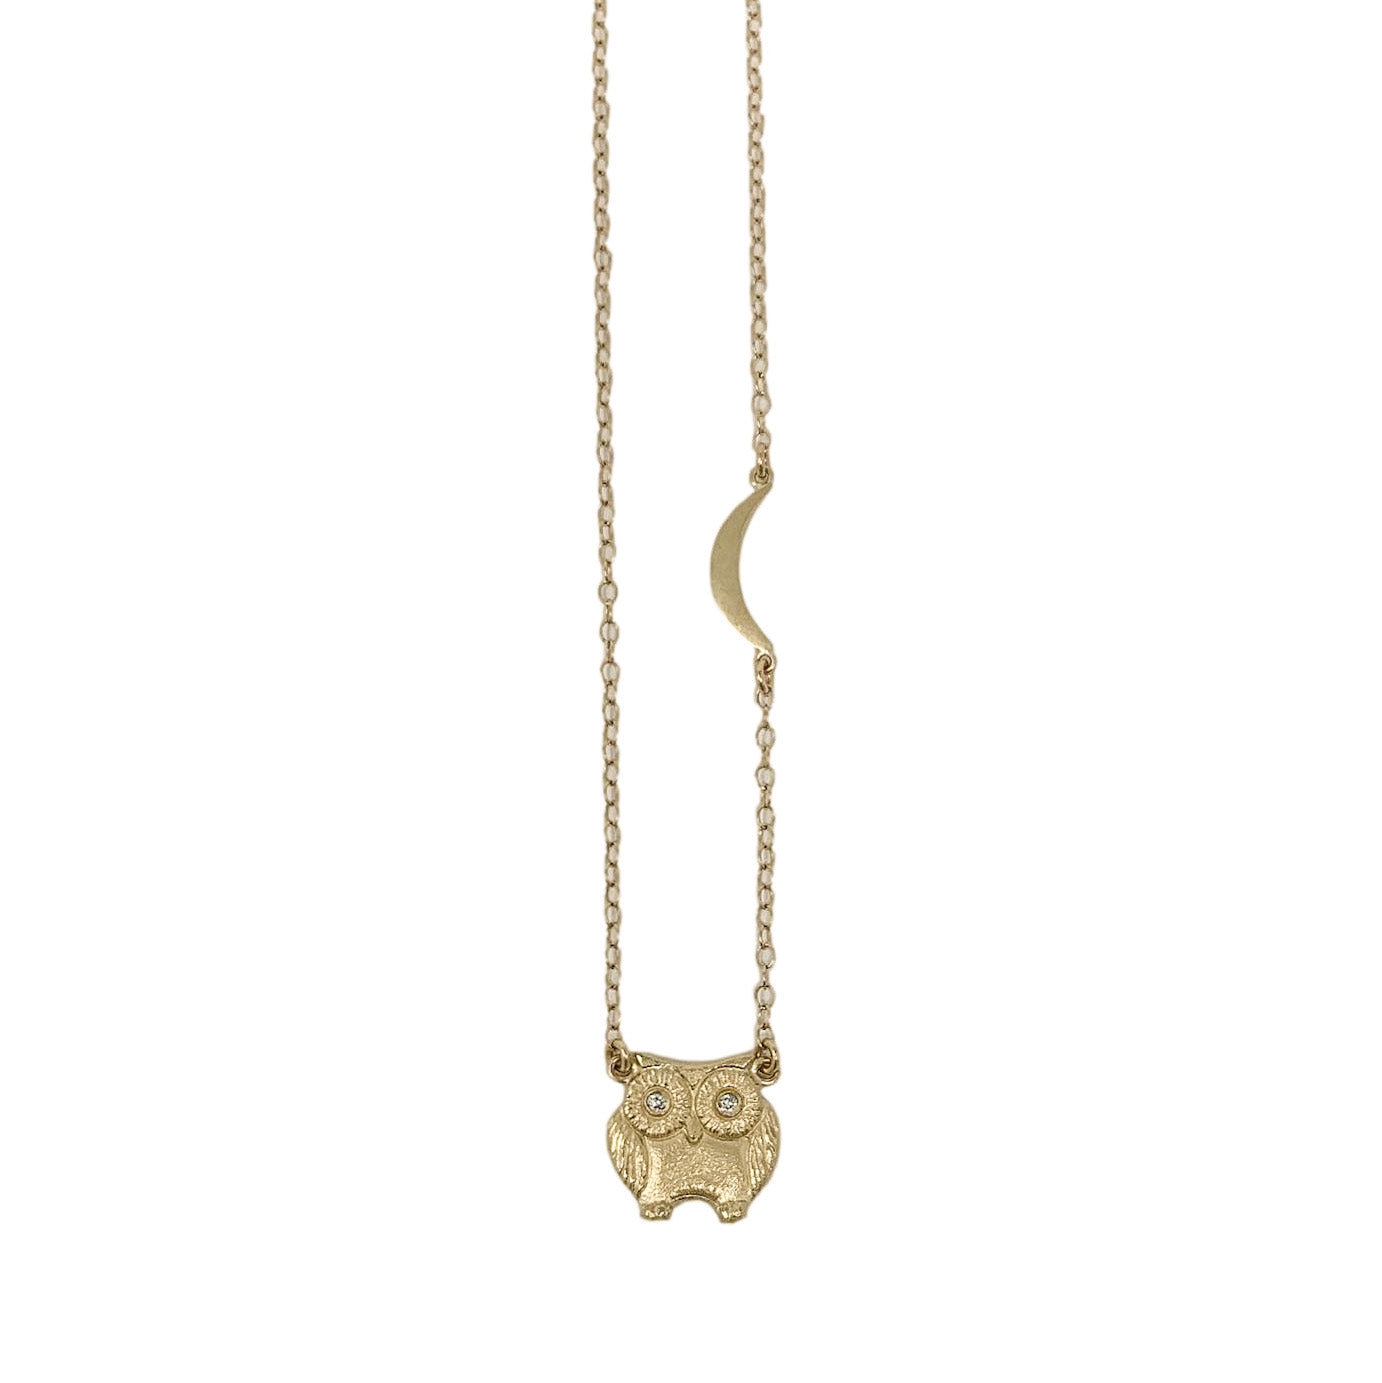 .Gold 14K Owl Necklace with Diamonds